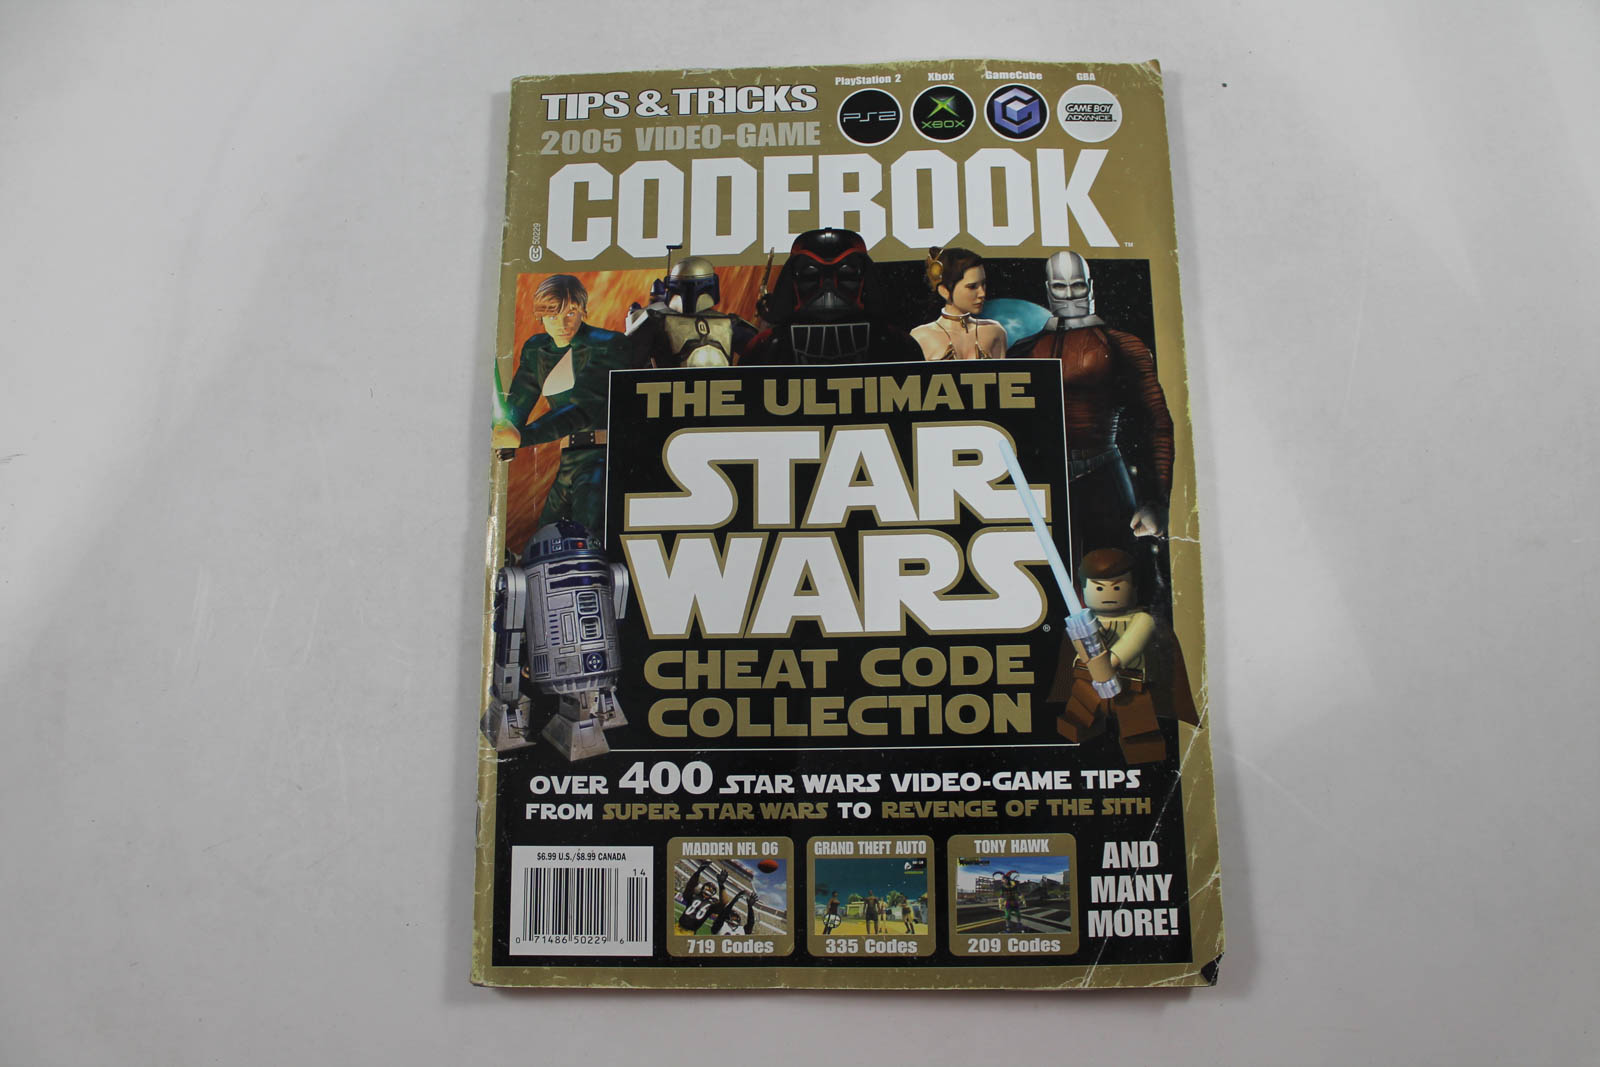 Tips Tricks 2005 Video Game Codebook The Ultimate Star Wars Cheat Code Collection